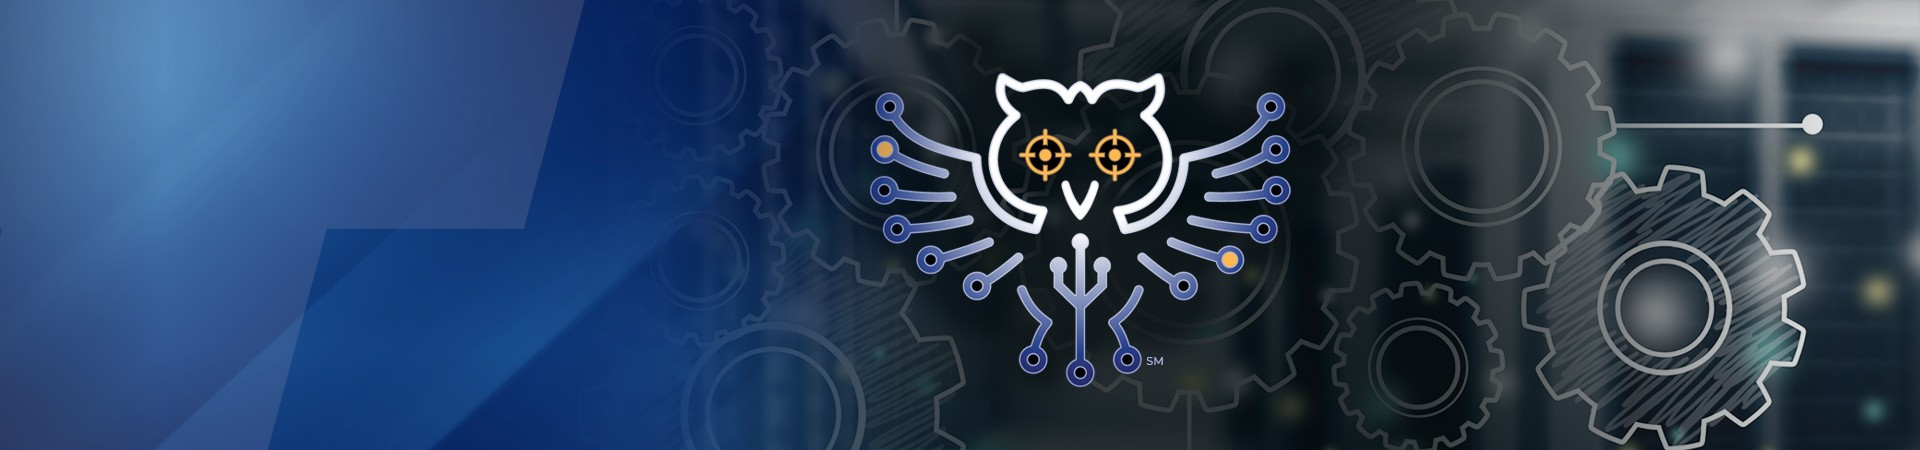 Technica Innovation owl on lab background